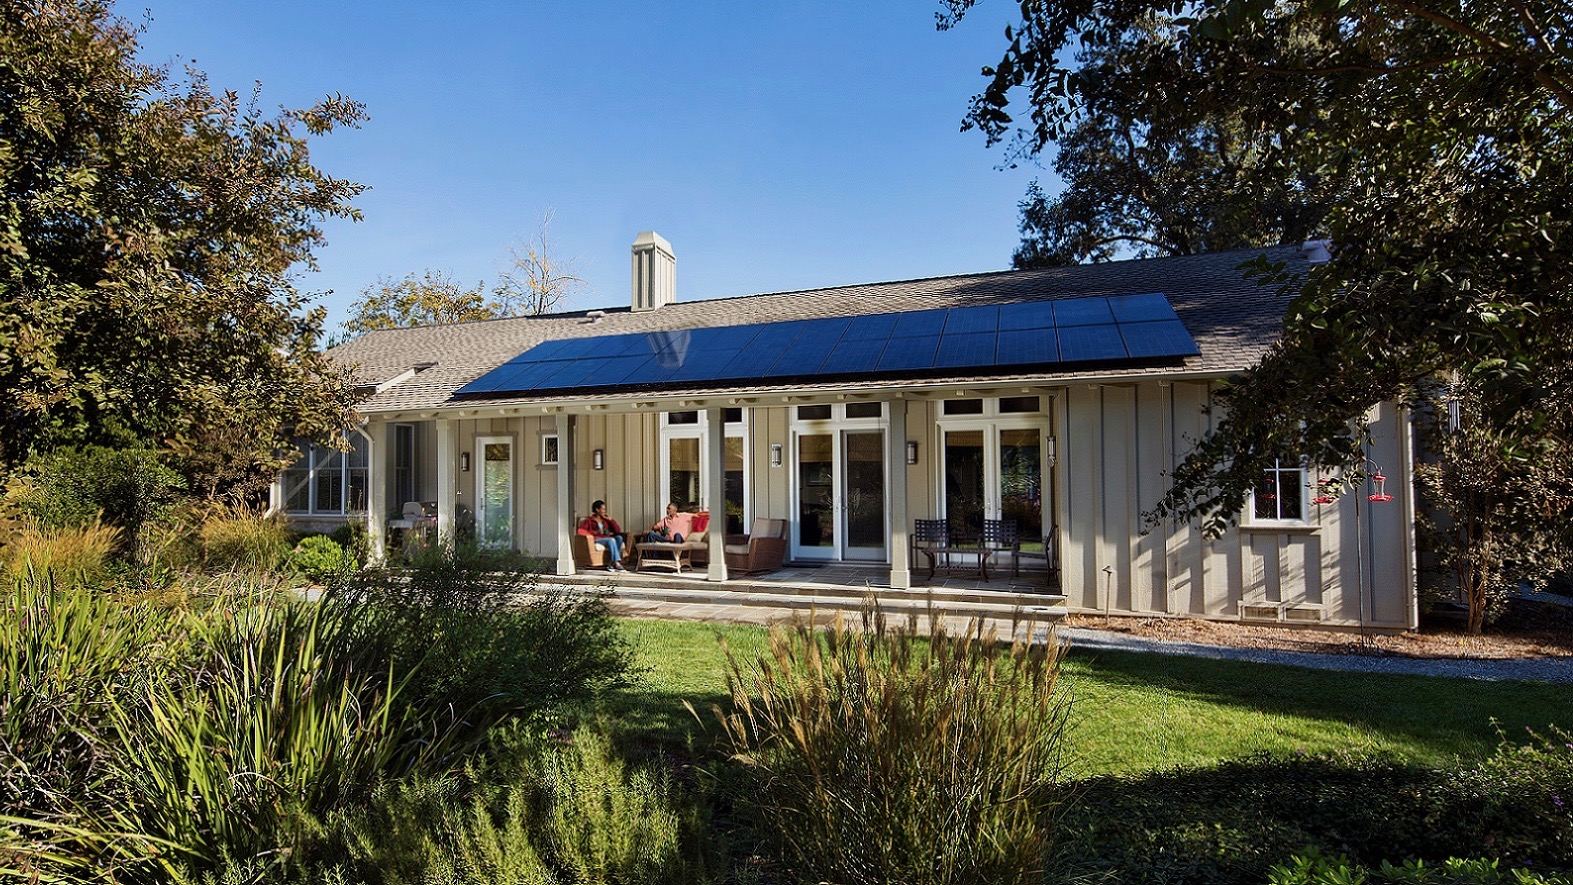 Home solar and electric cars are converging, and it's about time